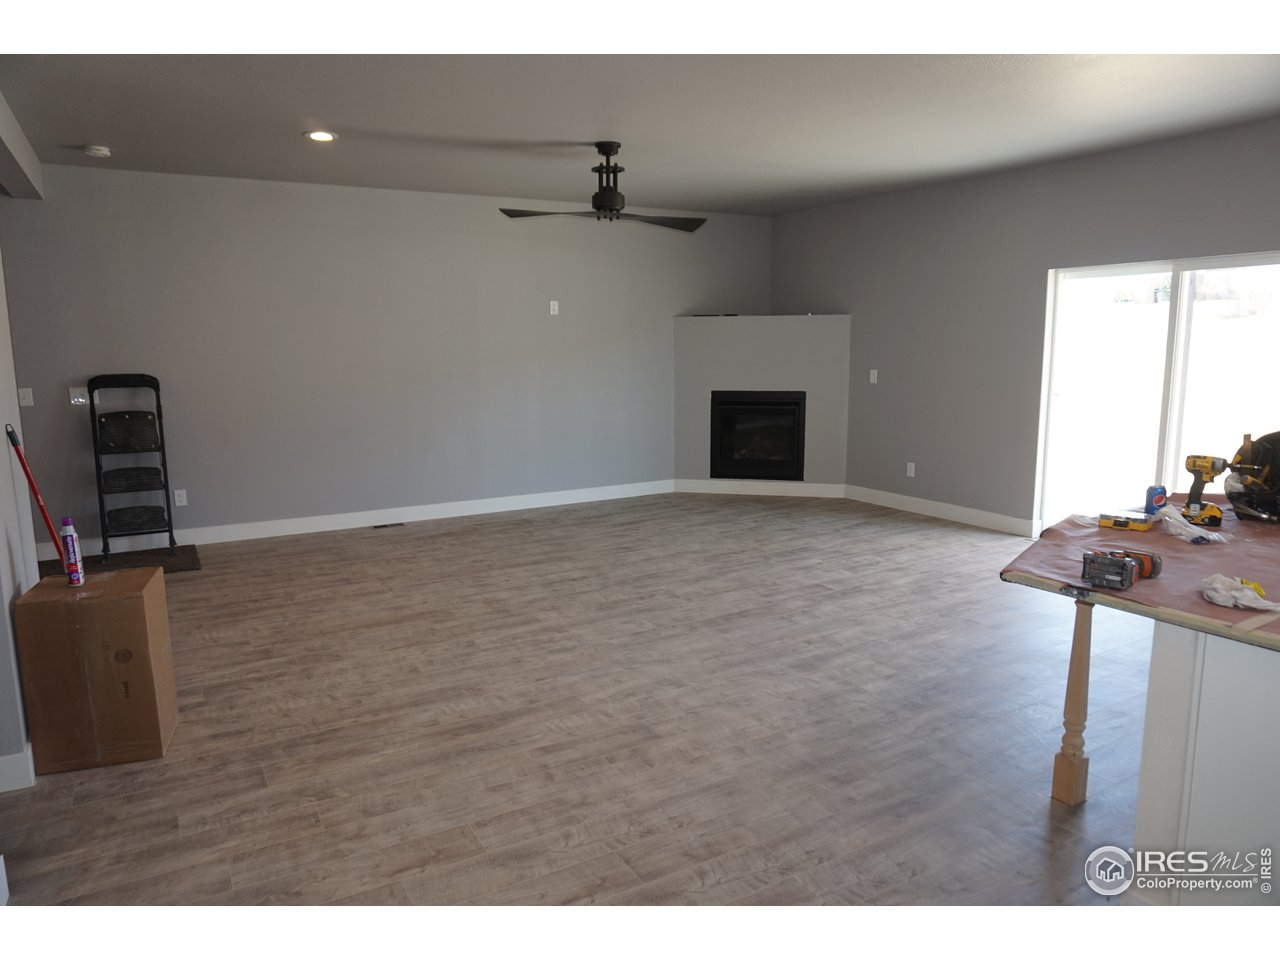 Great Room with Fireplace Option